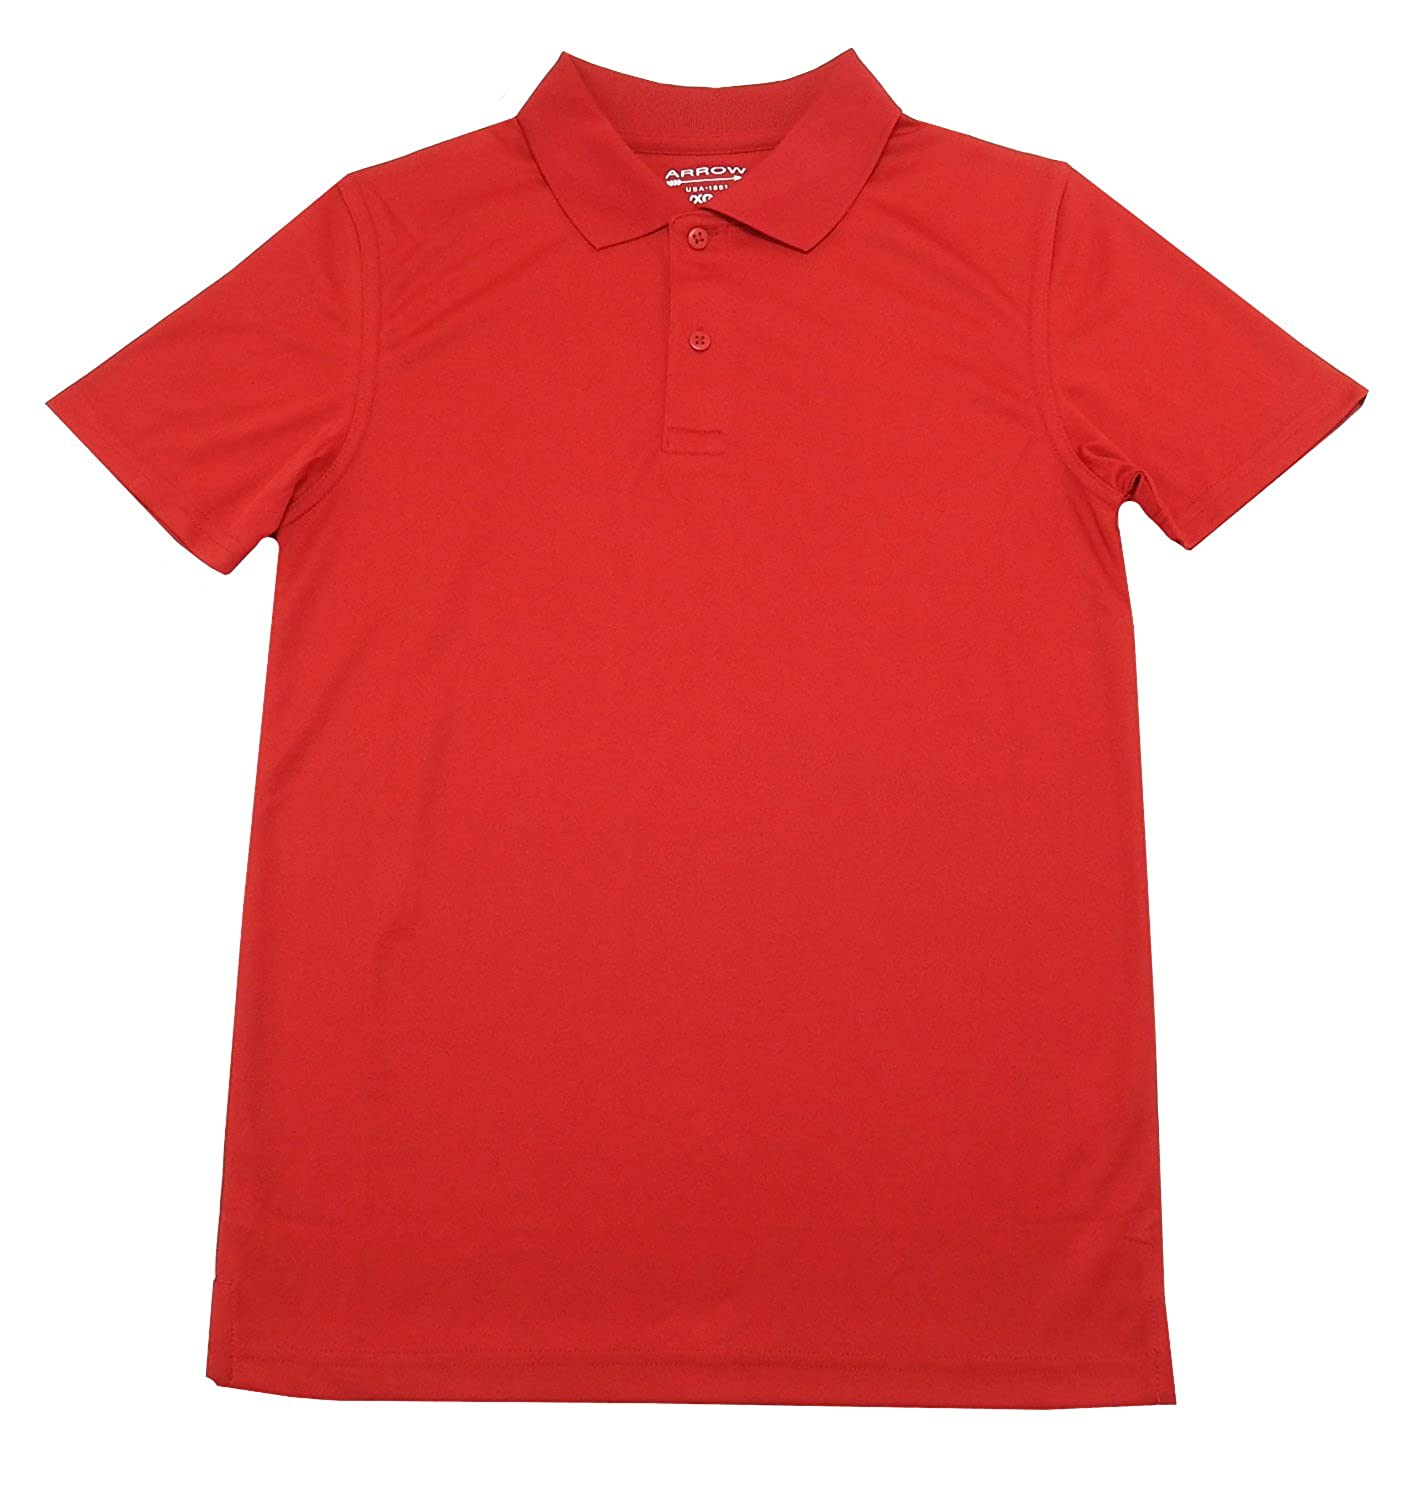 Red Arrow Boys Approved Schoolwear Short Sleeve Polo Shirt